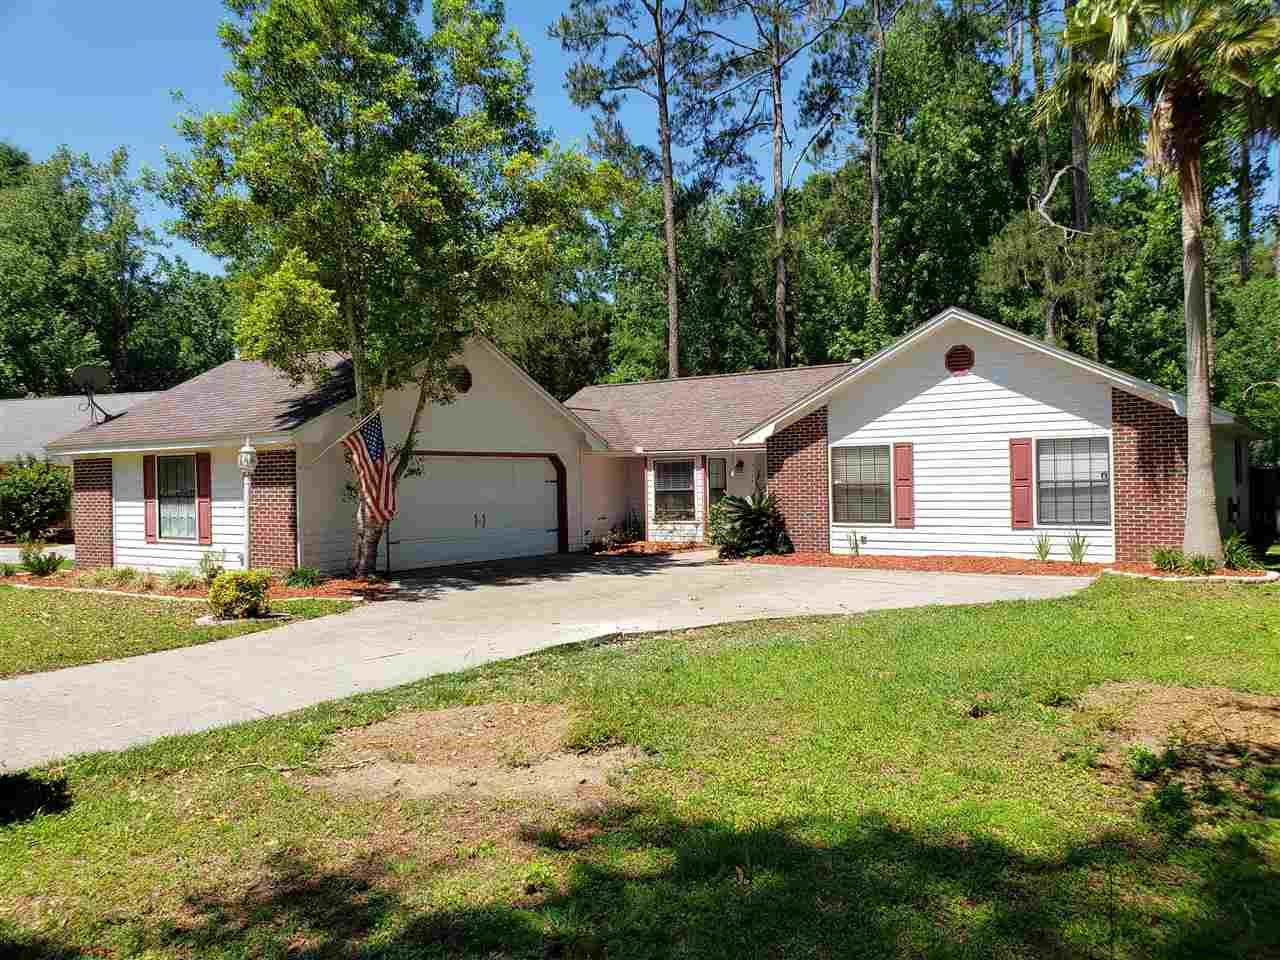 4624 Killimore Lane, Tallahassee, FL 32309 - MLS#: 331824